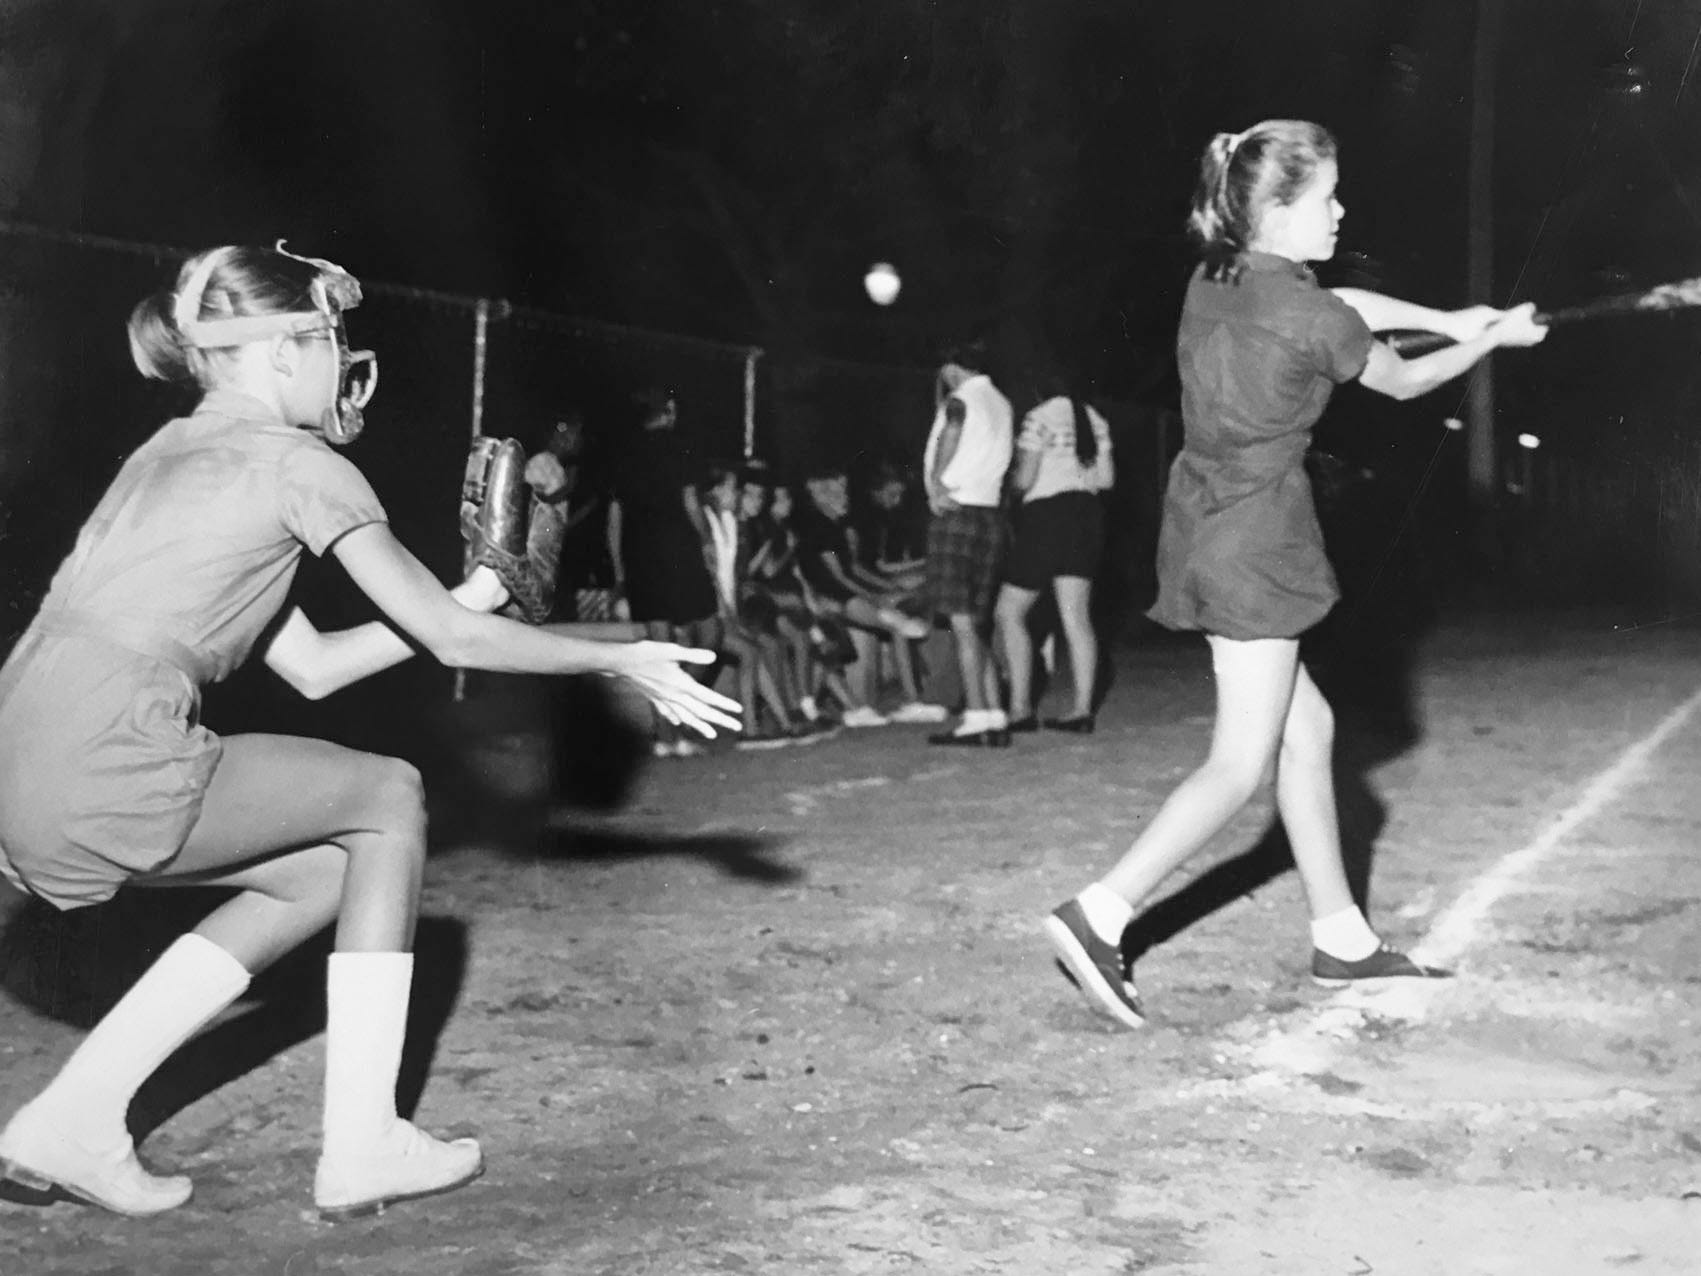 Catcher for the Warrington team, Susan Lloyd, and batter for the Miracle Mile team Mary Anne Roberts play softball in Vero Beach, unknown year.